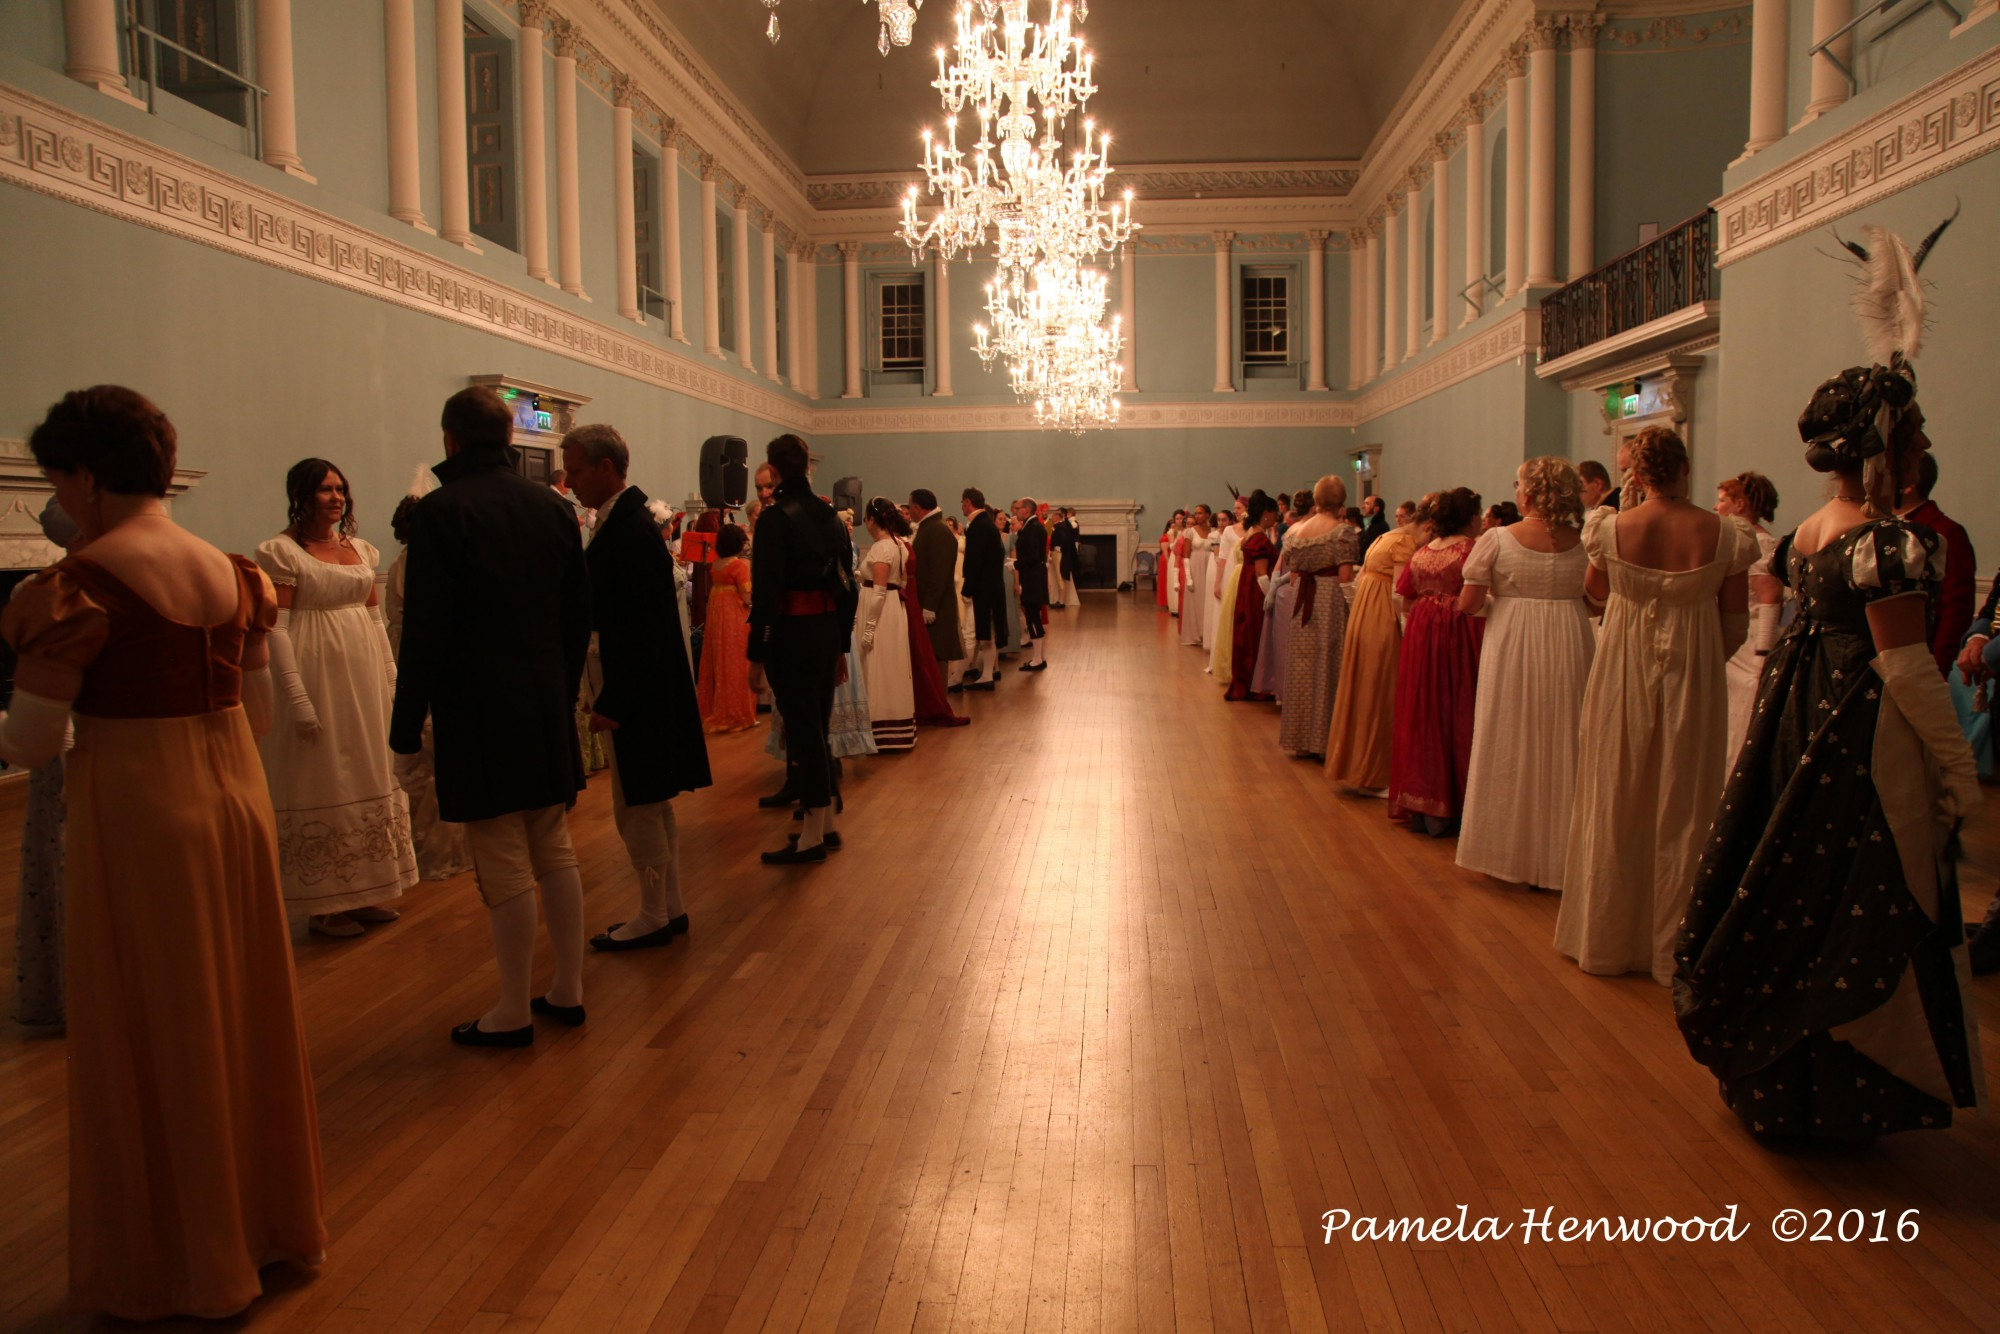 026 2020 Jane Austen Grand Regency Ball and supper, Assembly rooms Bath. Saturday September 19th 7.00pm-12pm